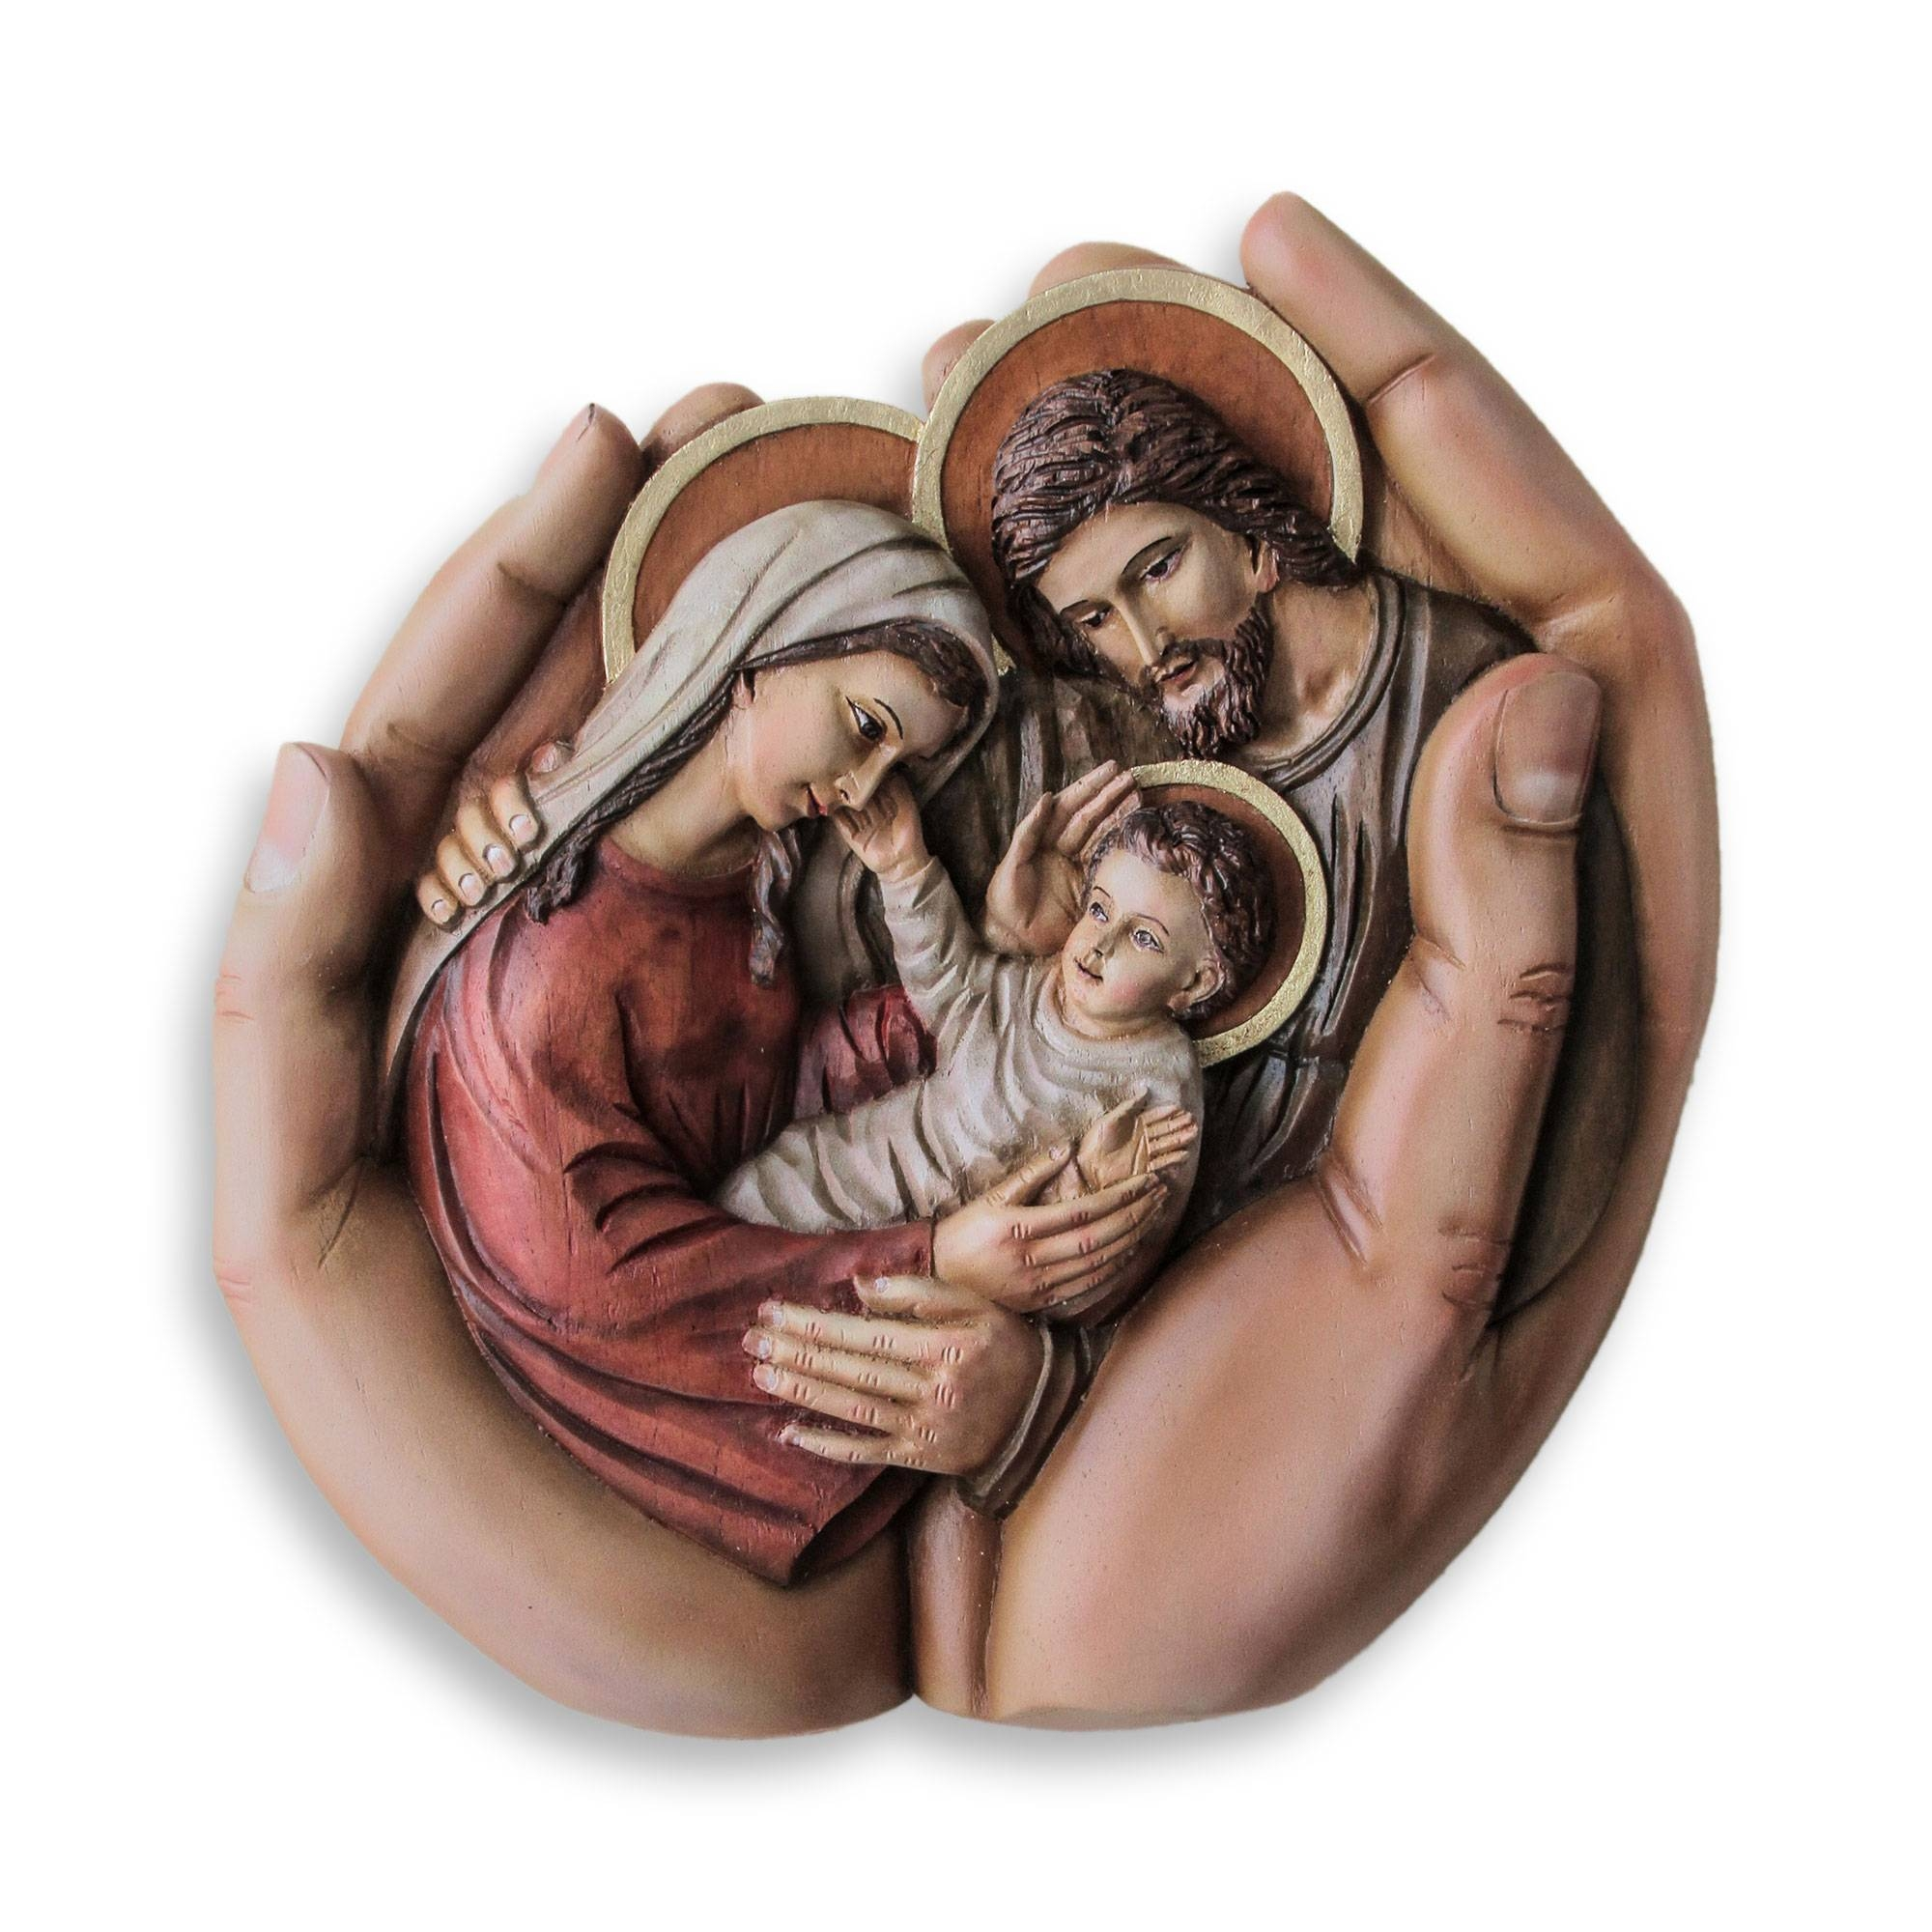 Peruvian Hand Carved Holy Family Cedar Wall Sculpture – In God's Intended For Newest Peruvian Wall Art (View 19 of 30)